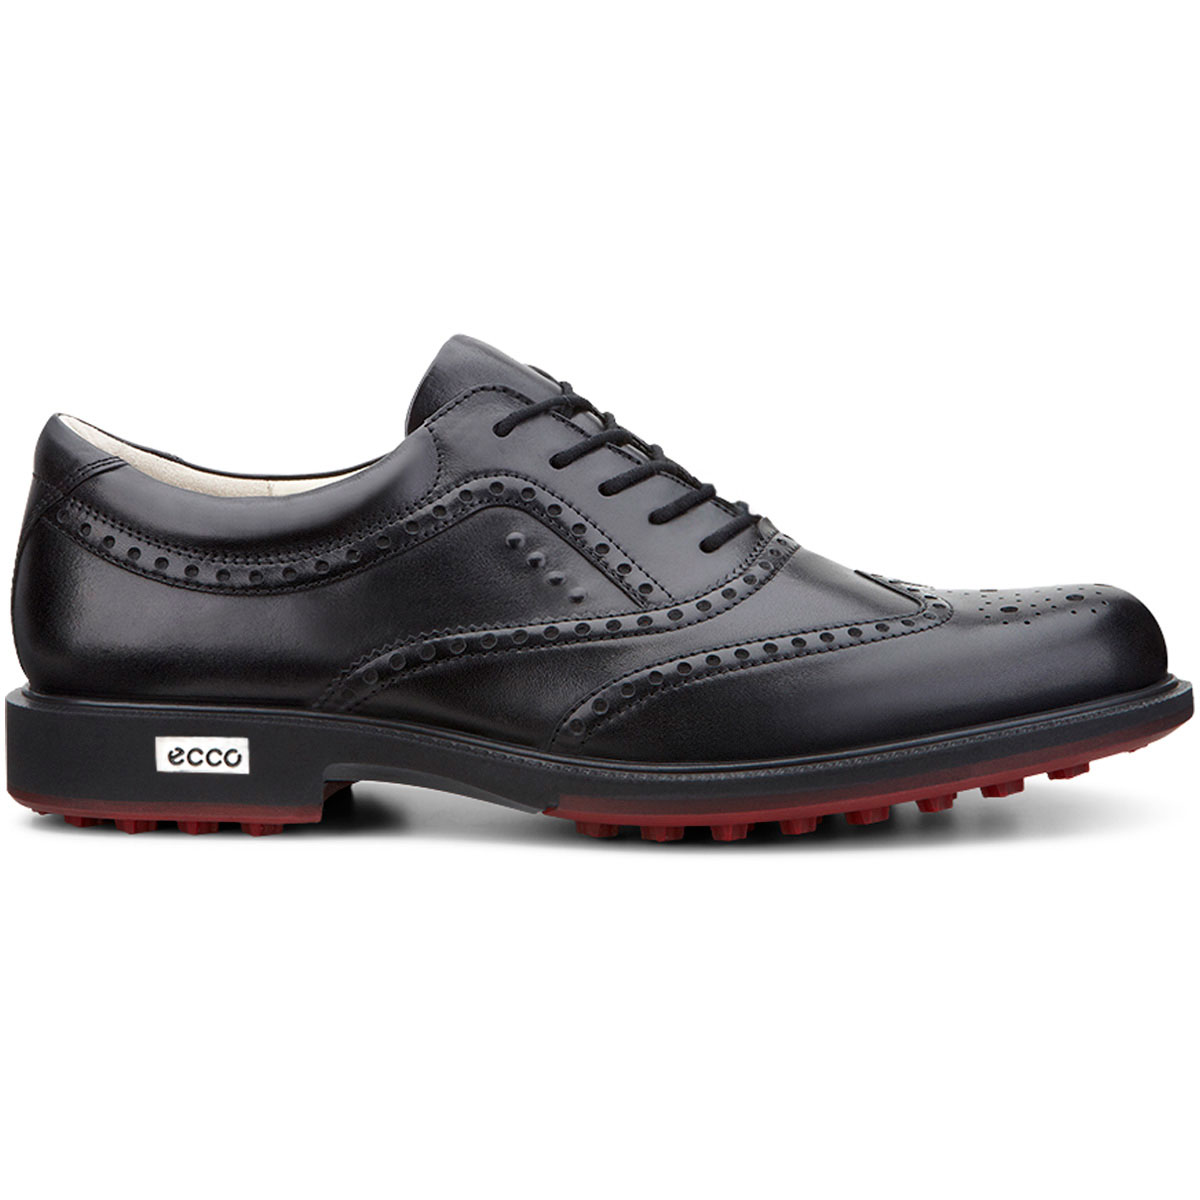 Waterproof Mens Spikeless Golf Shoes